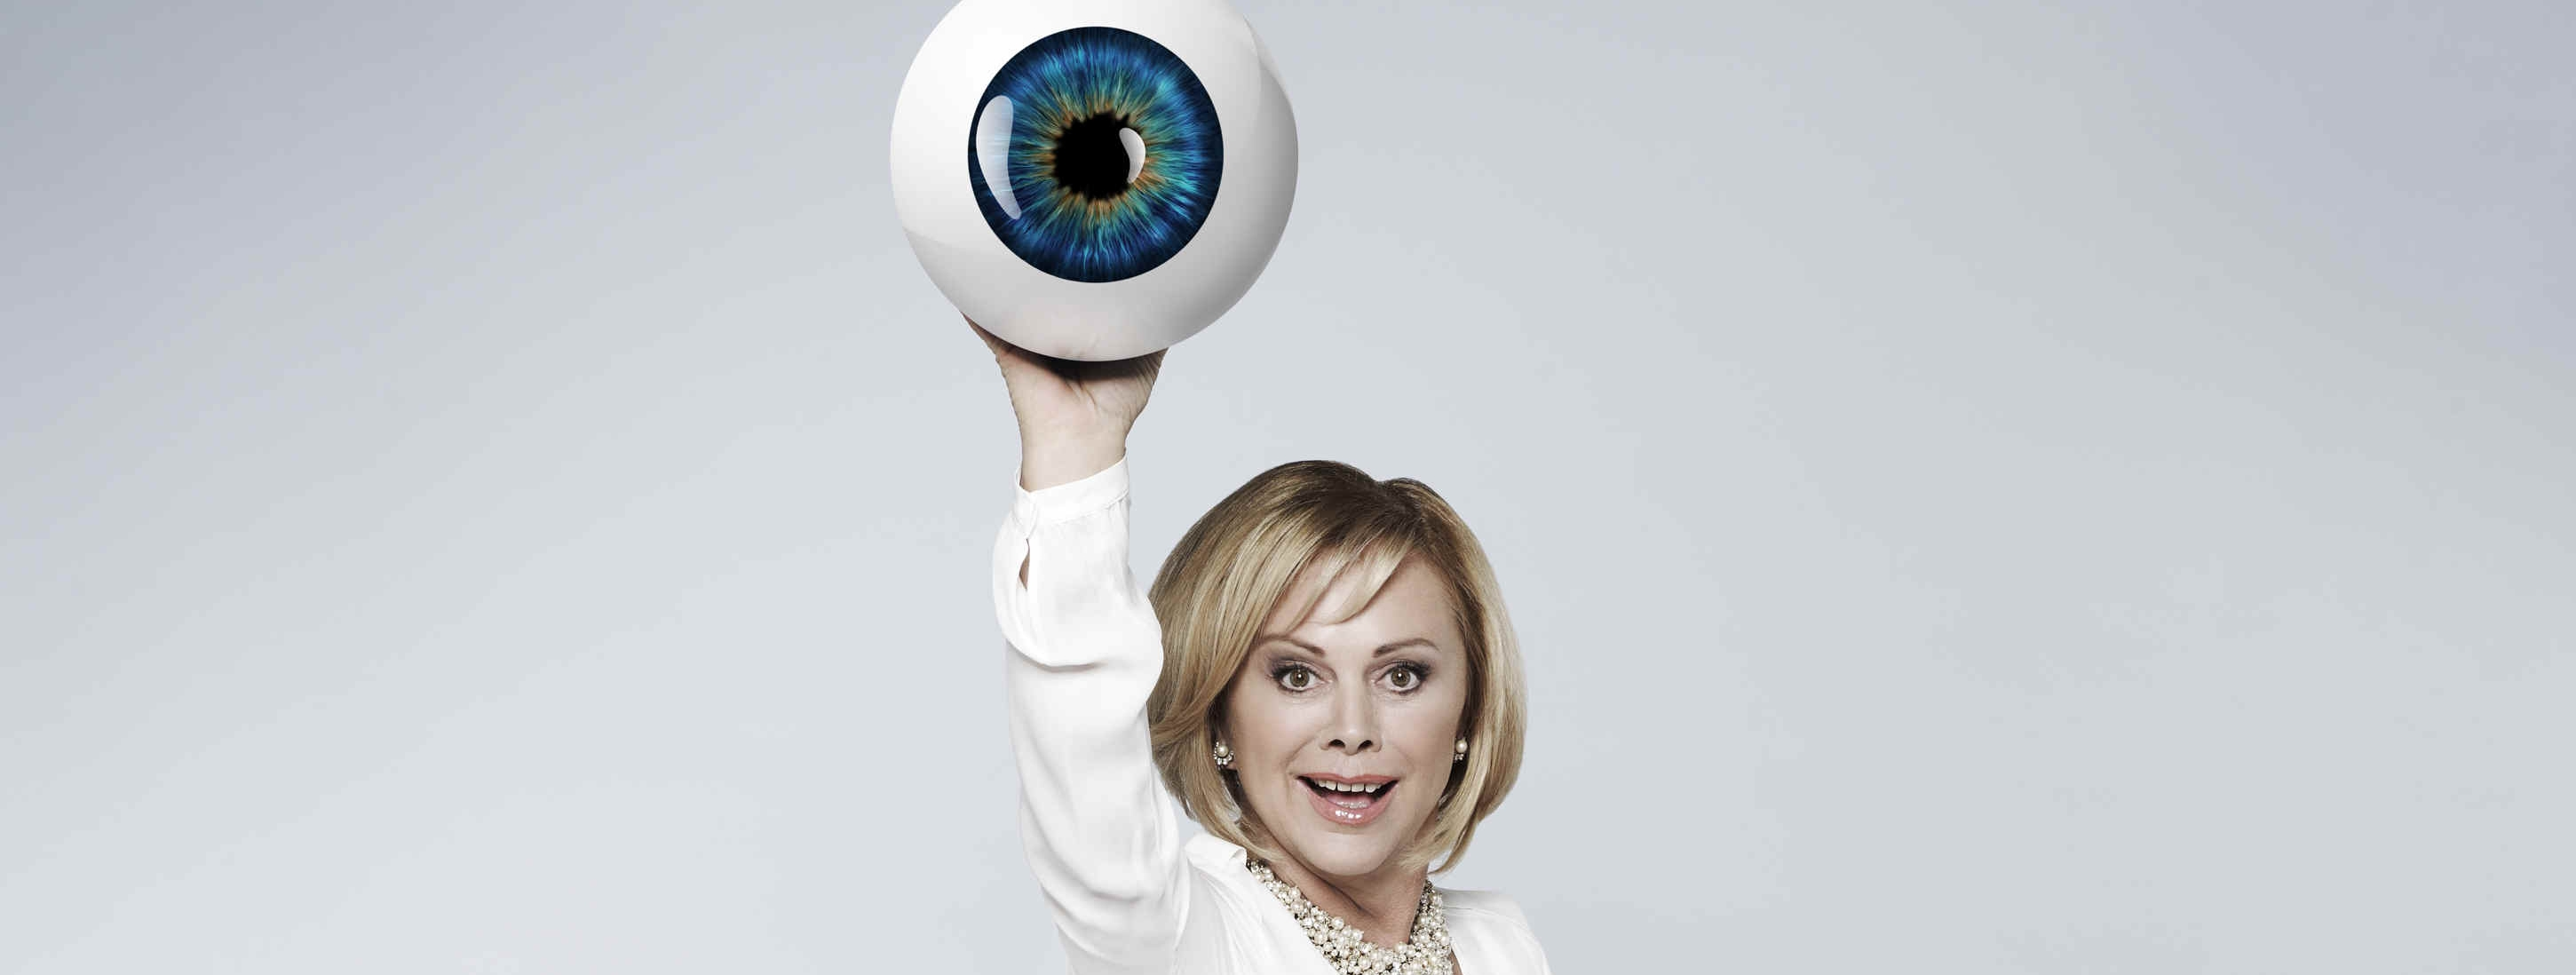 Marijke Amado Promi Big Brother 2013 Auge